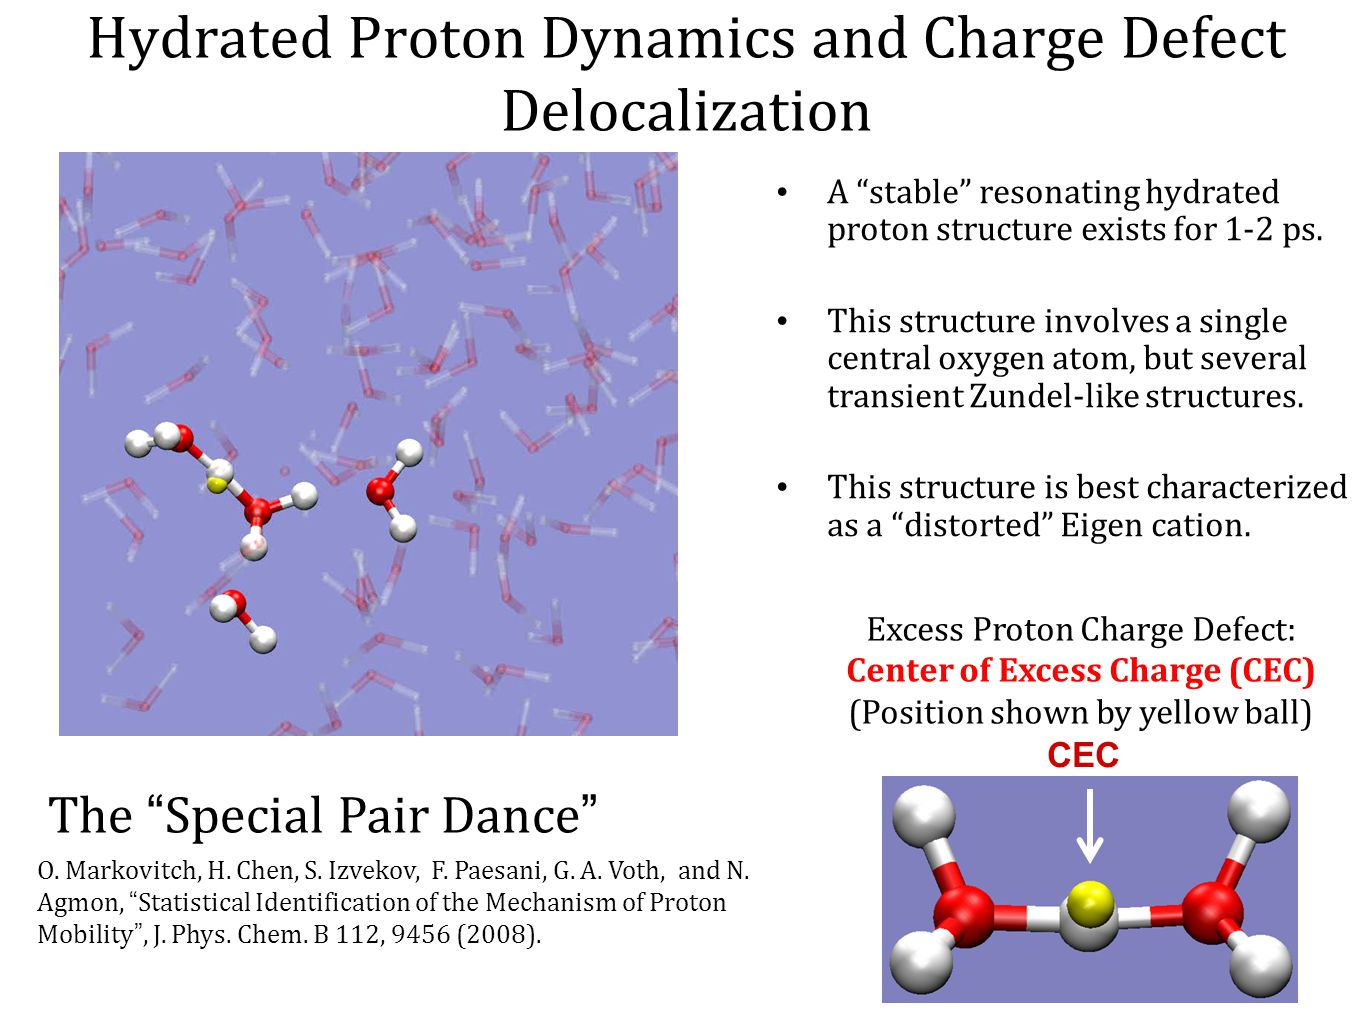 Hydrated Proton Dynamics and Charge Defect Delocalization